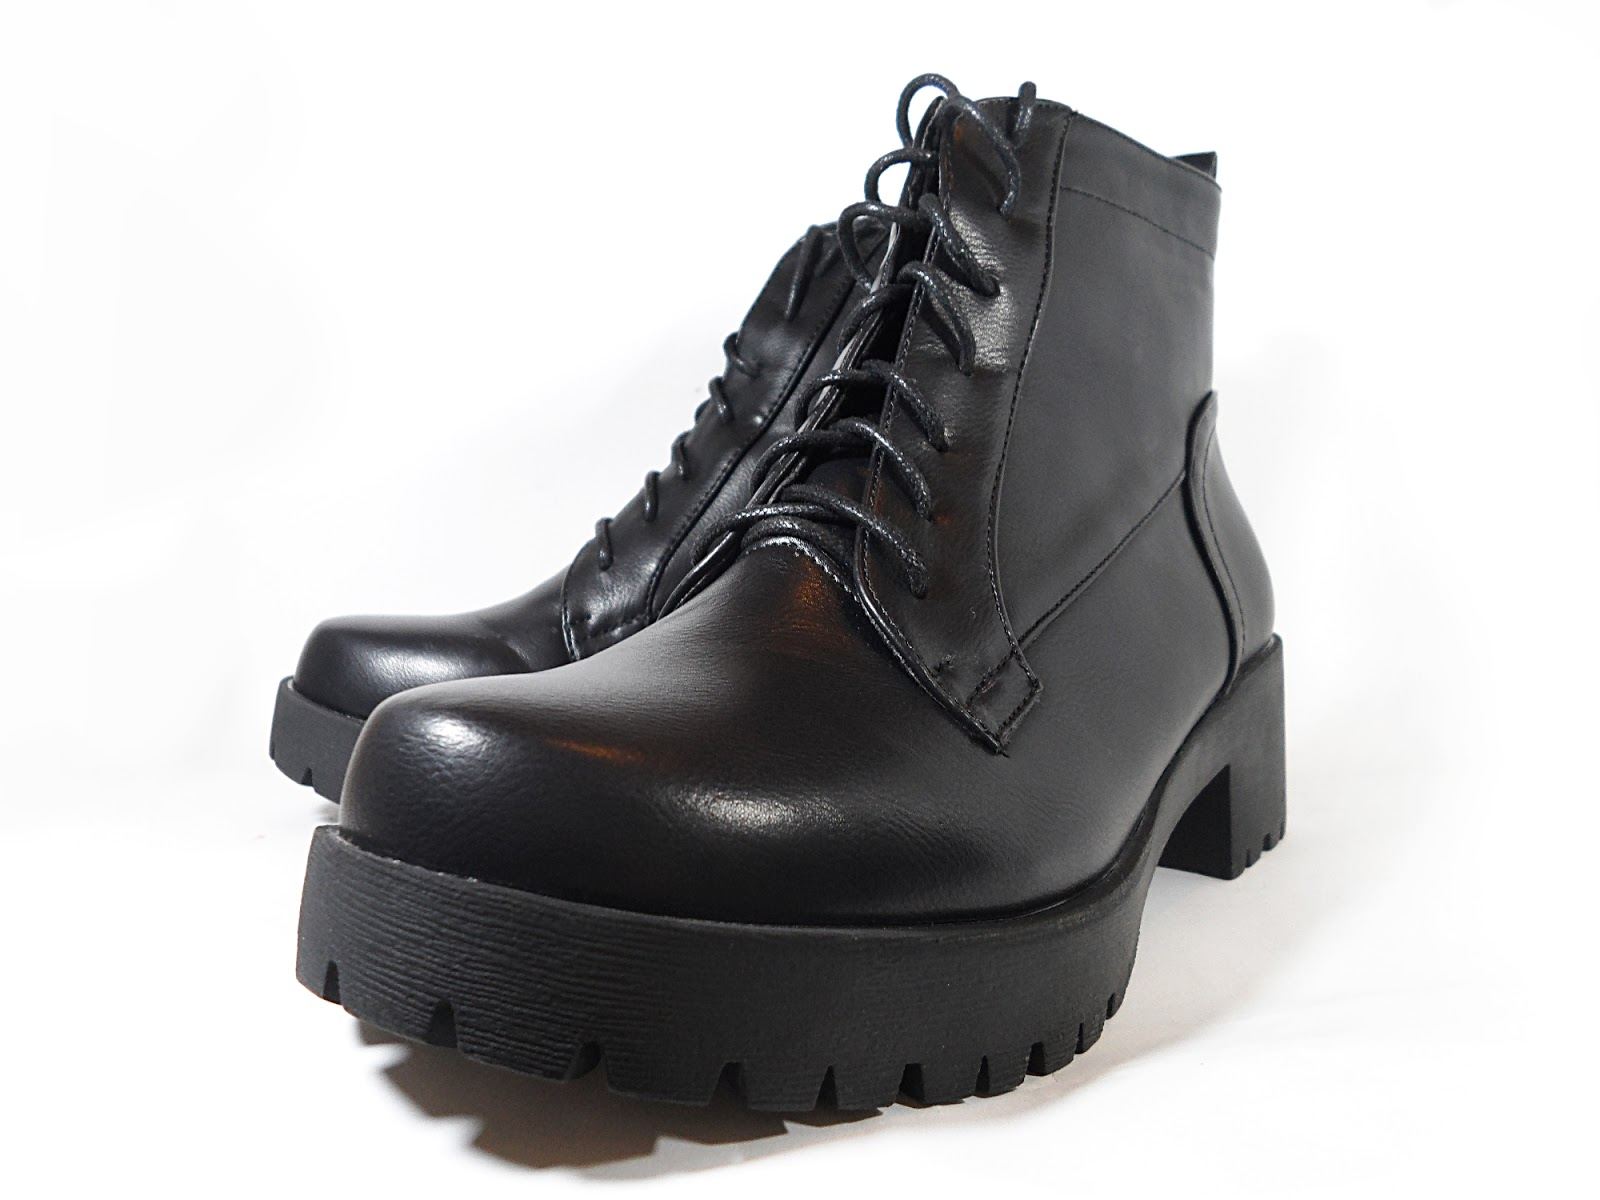 Zaful Cobra Combat Ankle Boots Review ♥ Black Friday Giveaway ...